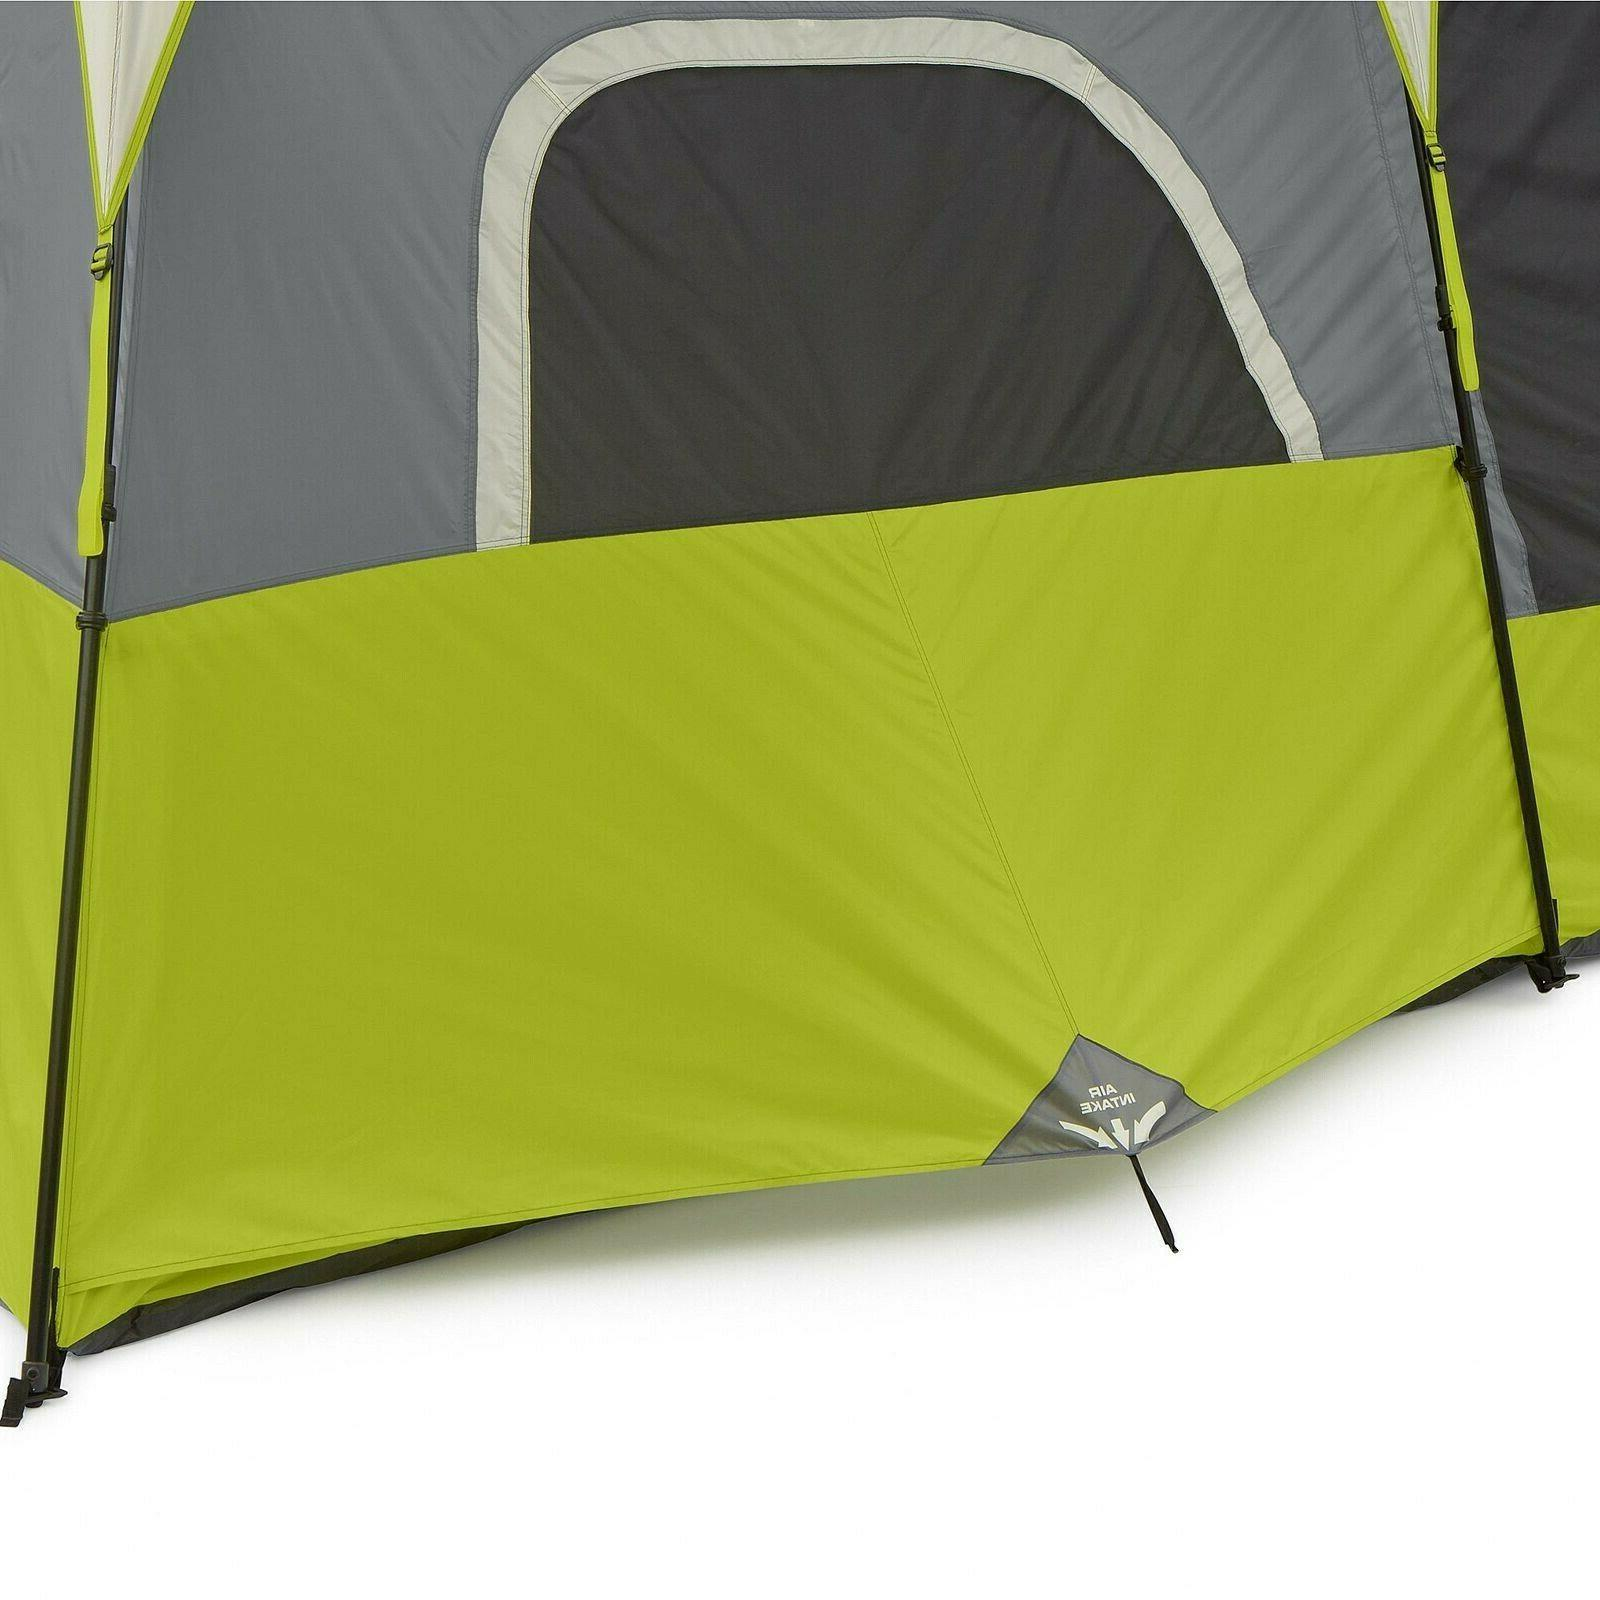 Instant Cabin Tent Room Outdoor Shelter